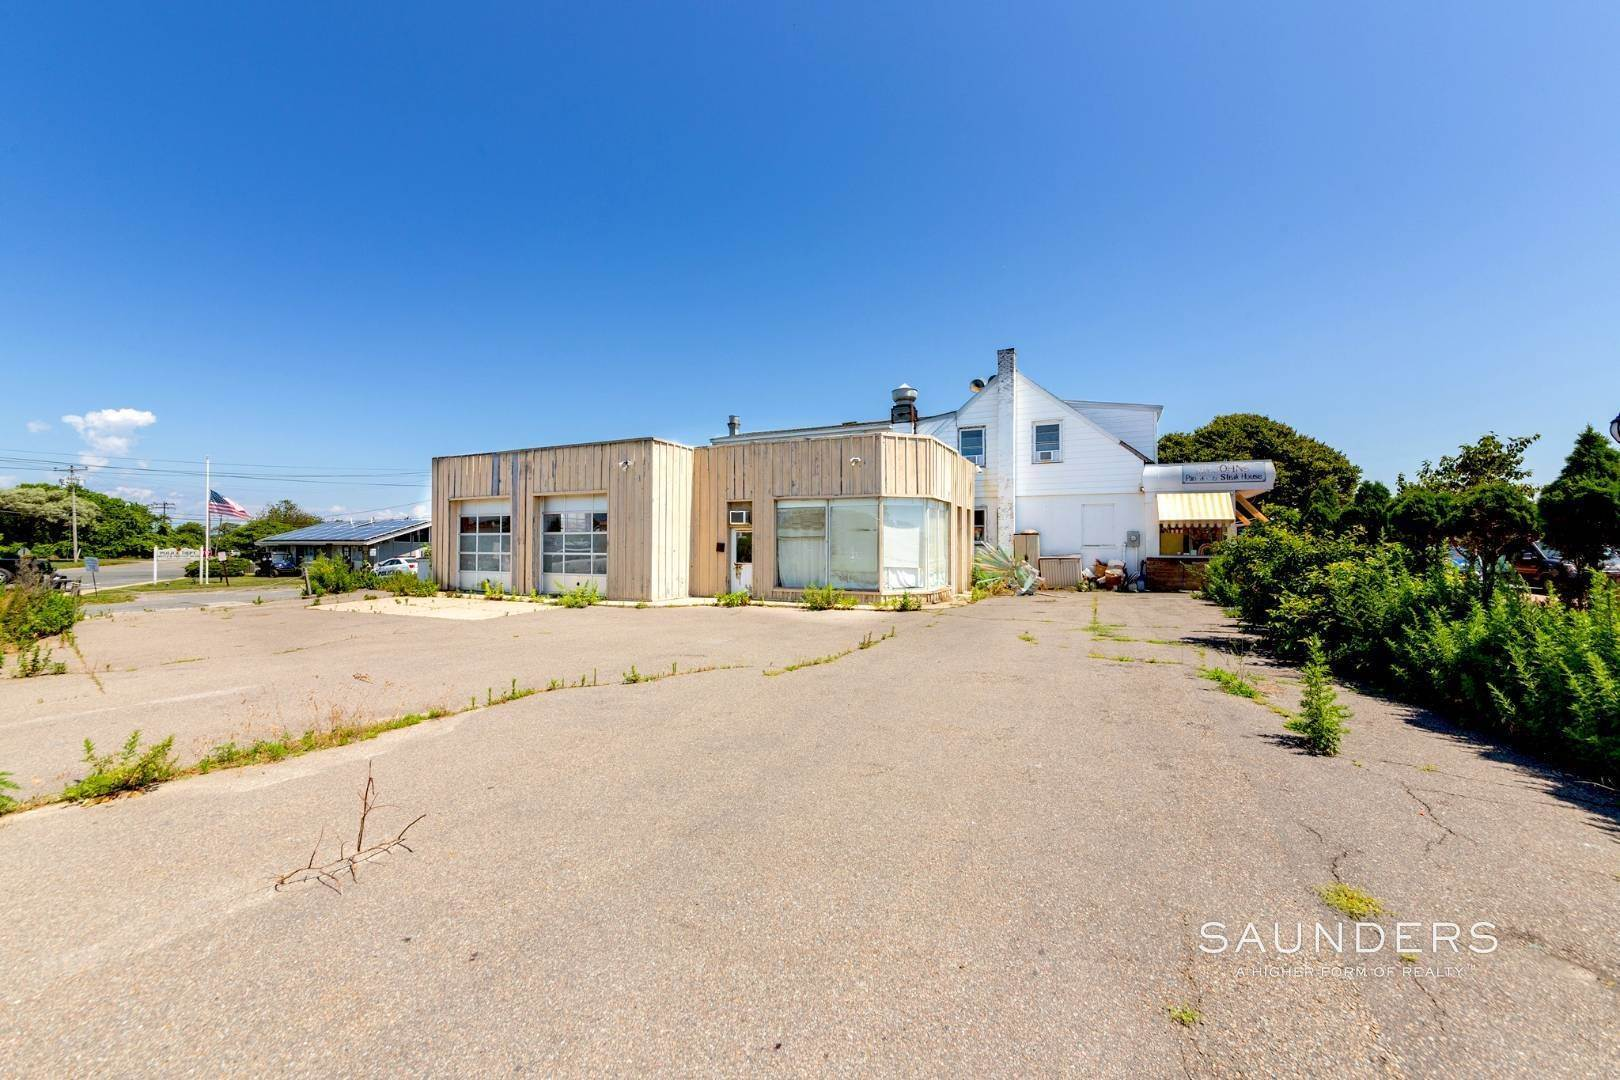 Commercial for Sale at Heart Of Montauk- Commercial Property For Sale 717 Montauk Highway, Montauk, East Hampton Town, NY 11954